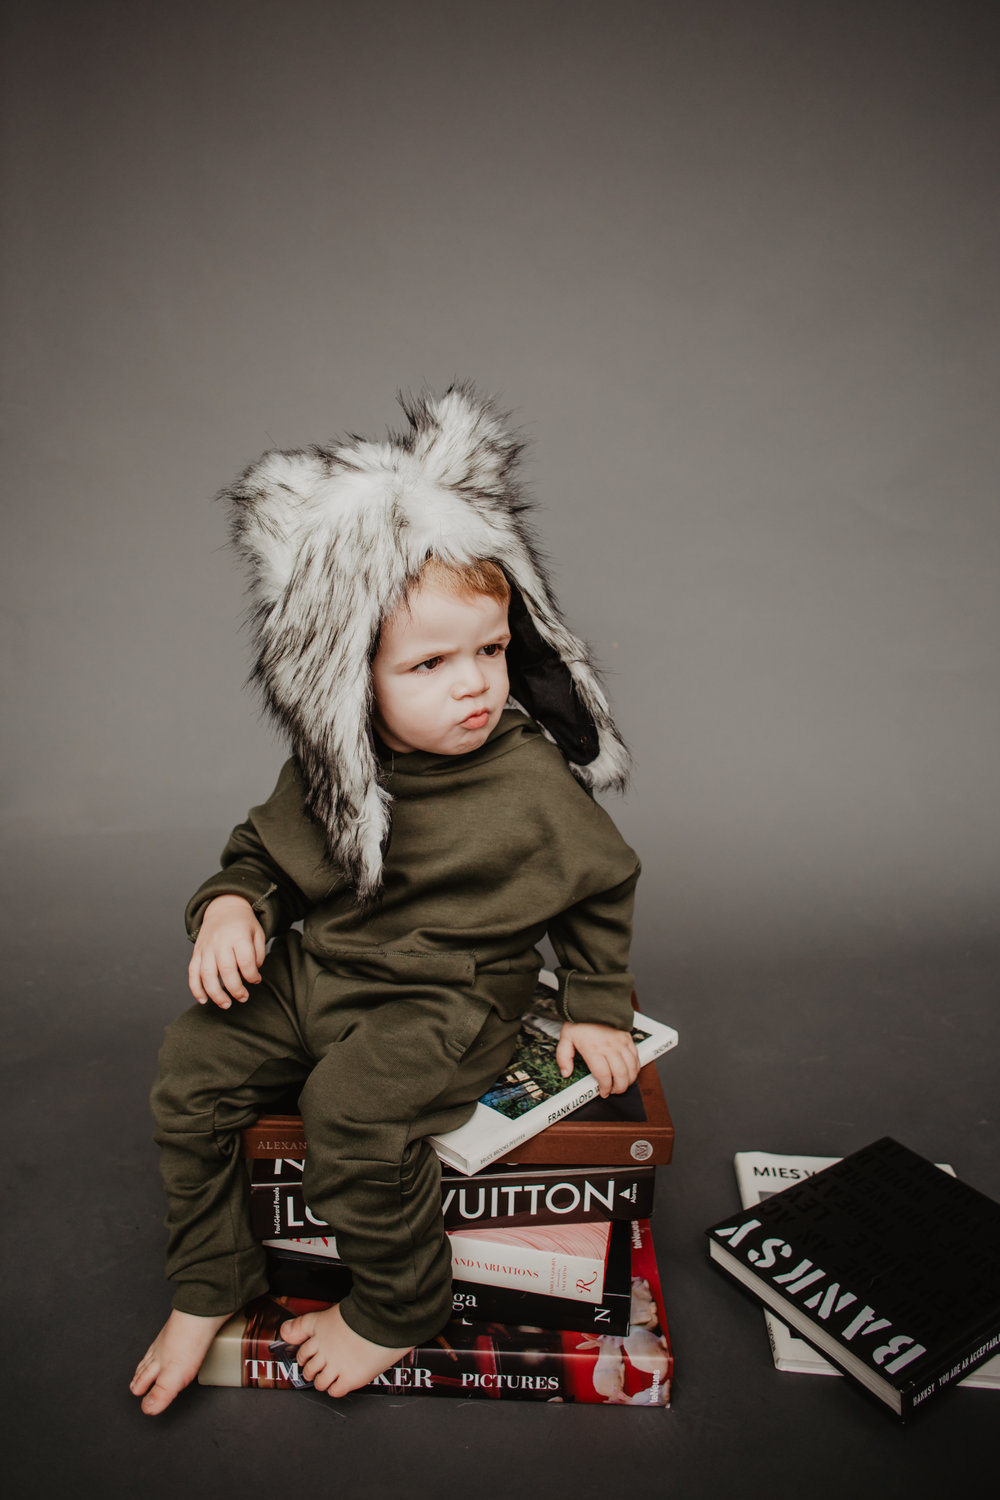 Cute Online Kids Clothing Brands - Cutest Baby Photos - Kambia Kids - Tenth & Pine -- Mommy Blogger-Vlogger - The Overwhelmed Mommy